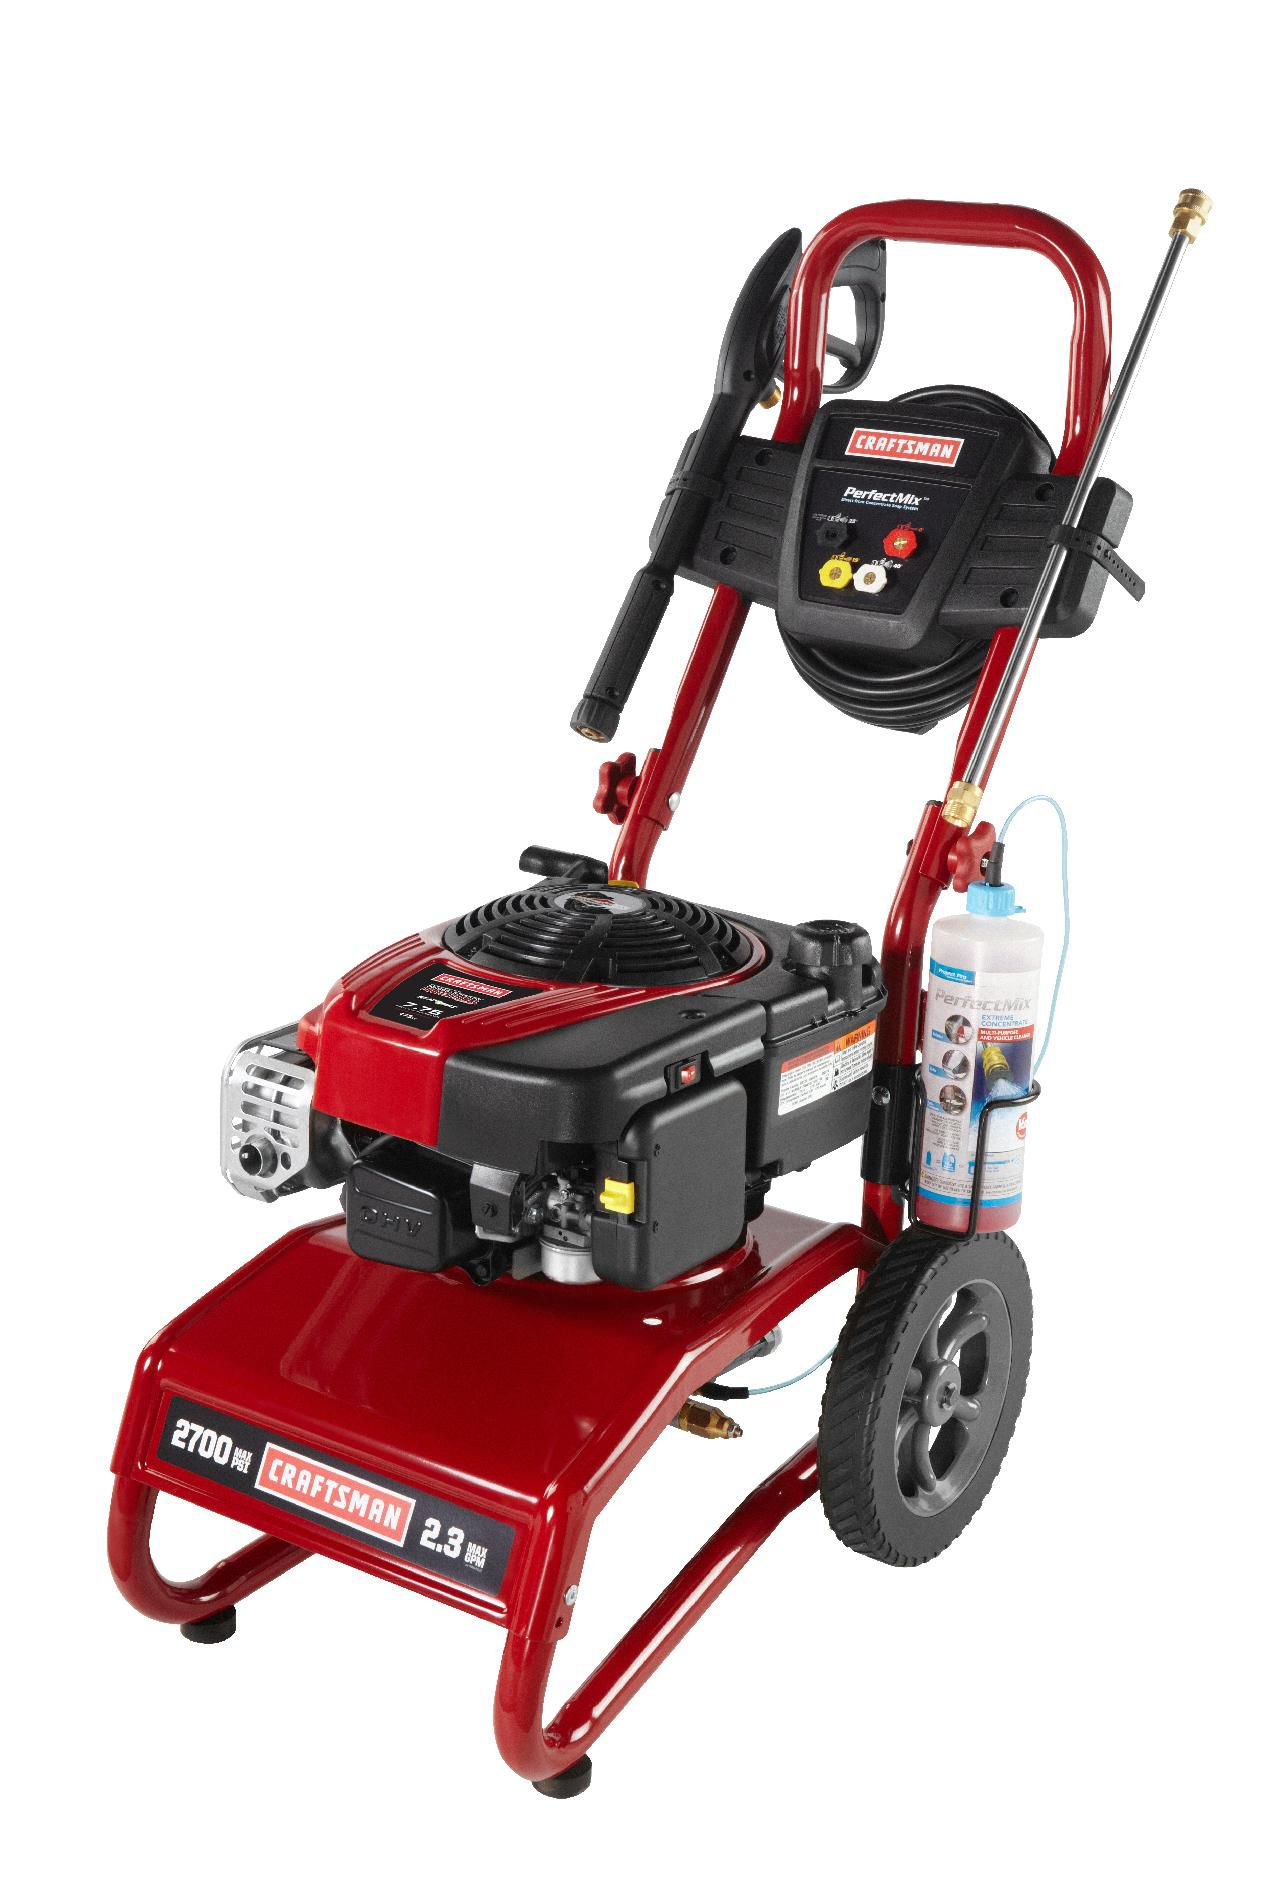 Craftsman Pressure Washer 2700 PSI, 2.3 GPM Briggs & Stratton Powered Non CA